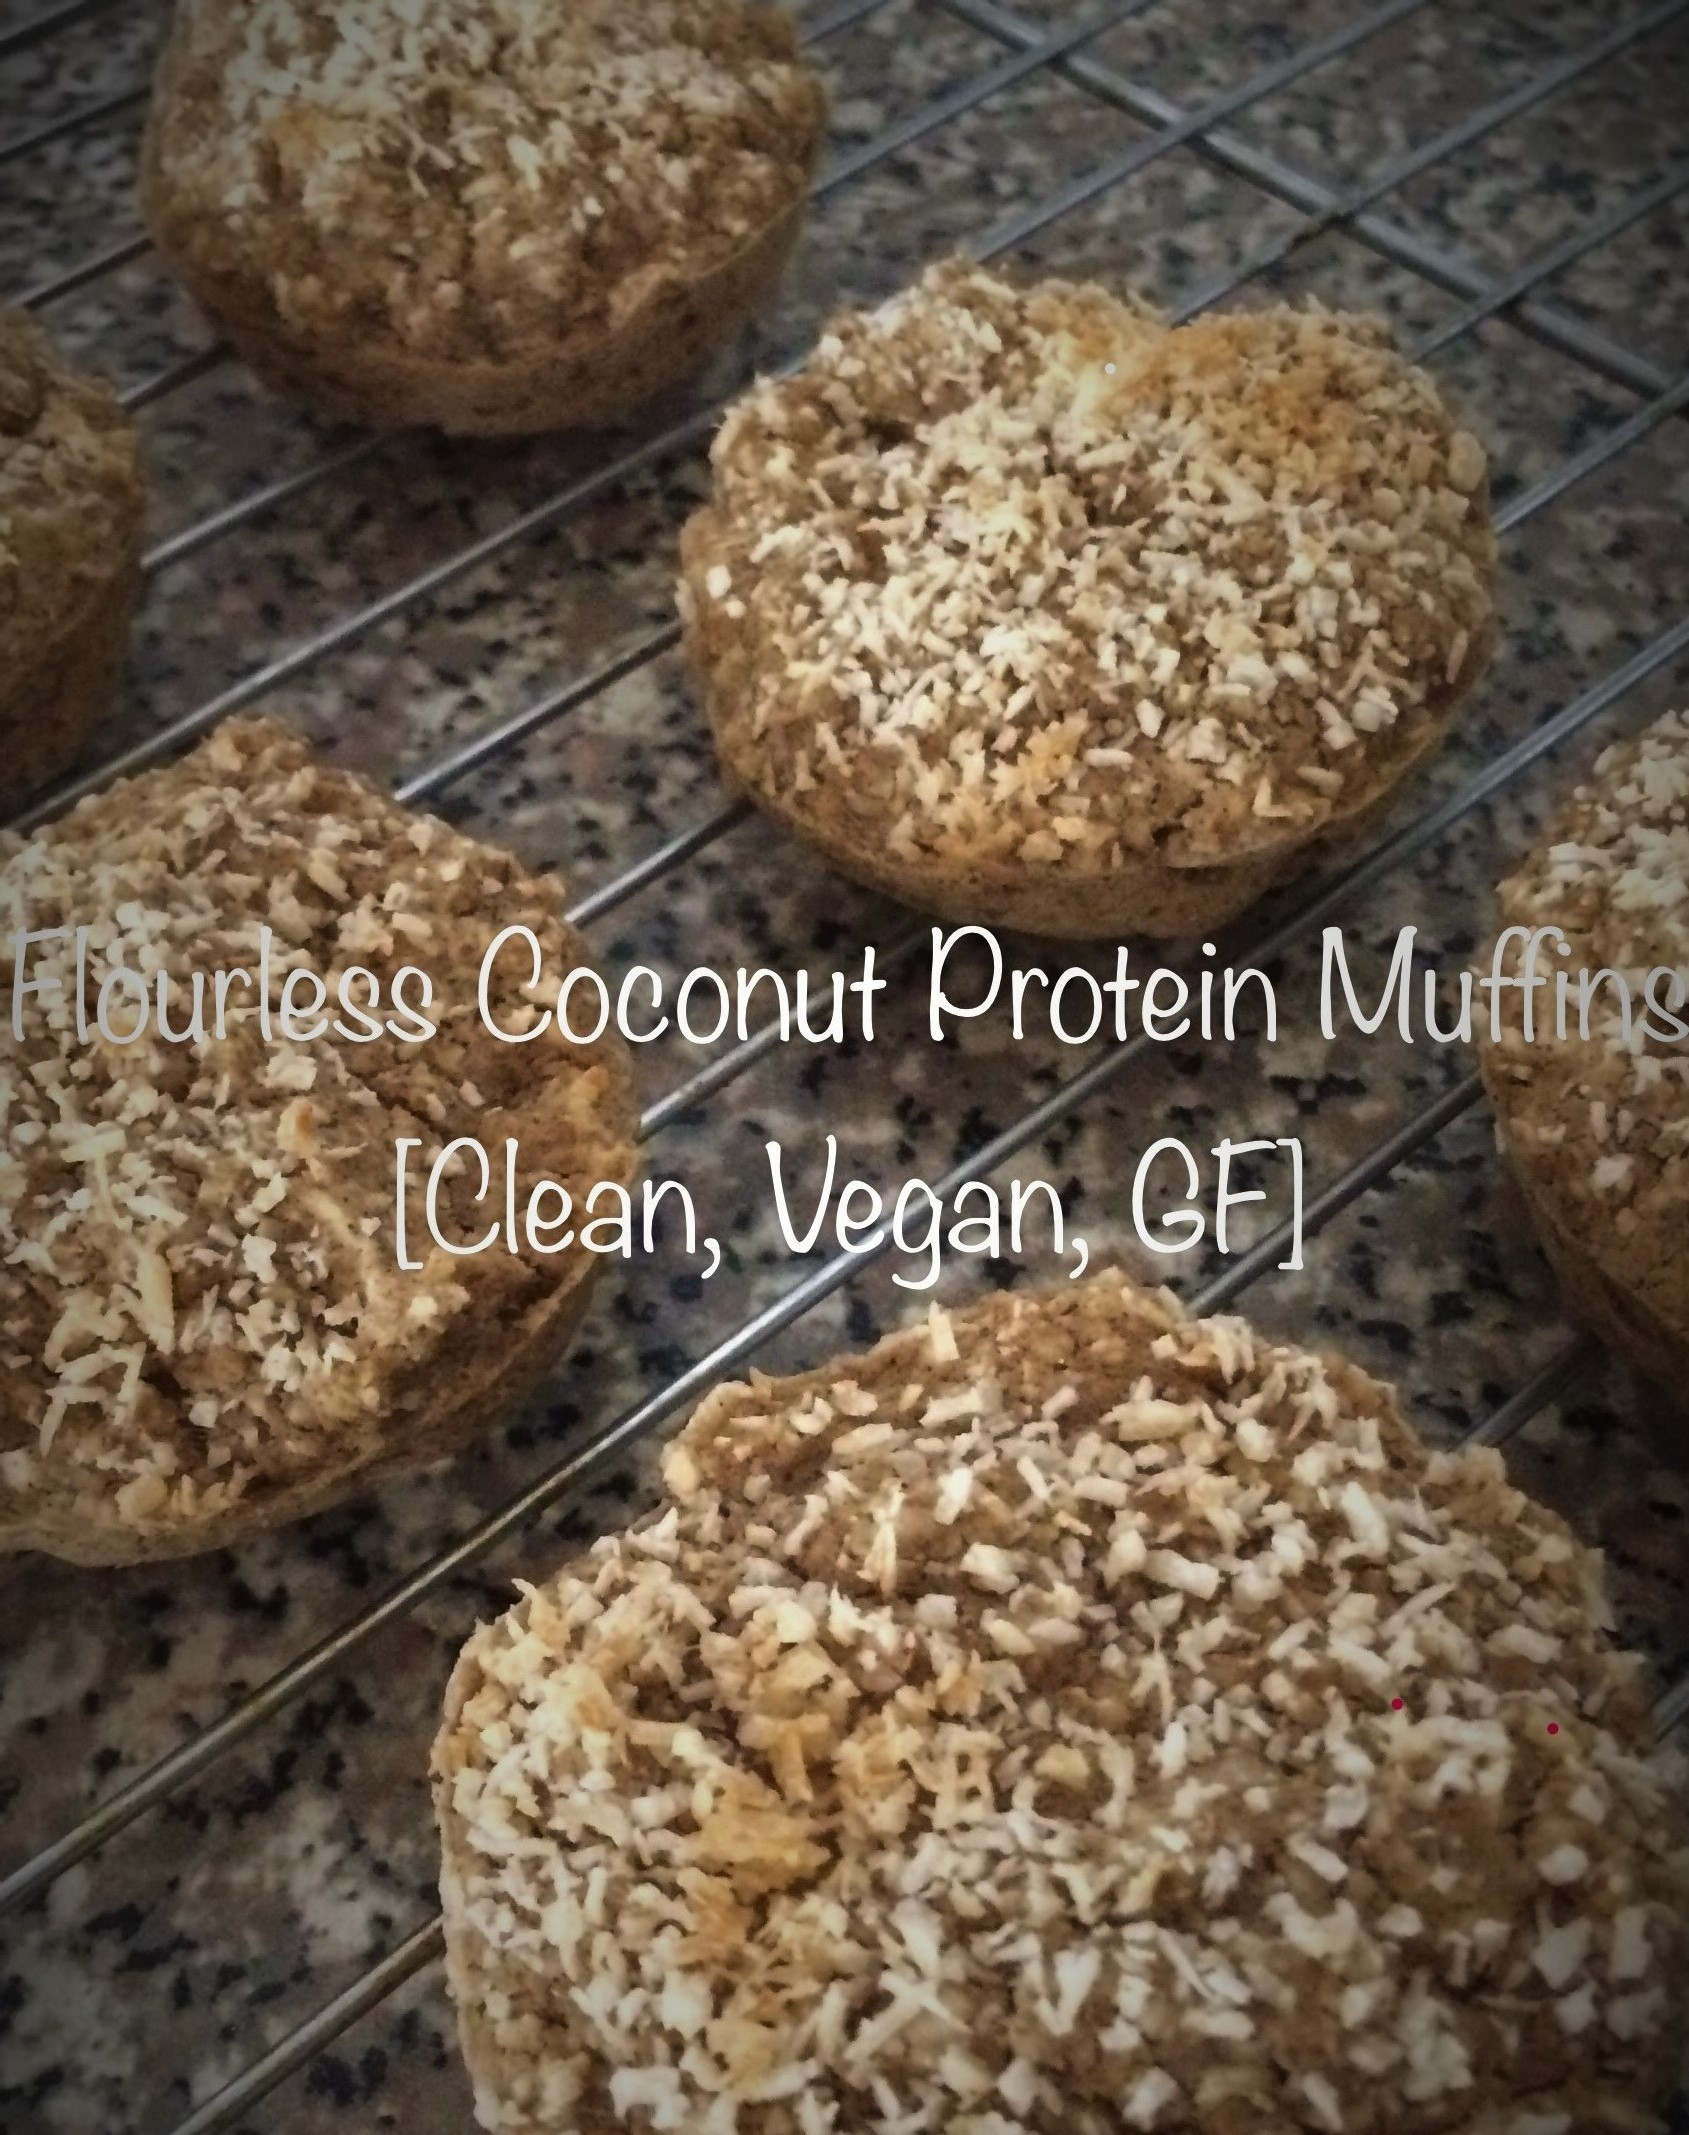 Flourless Coconut Protein Muffins [Clean, Vegan, GF] ...And A Dash of Cinnamon